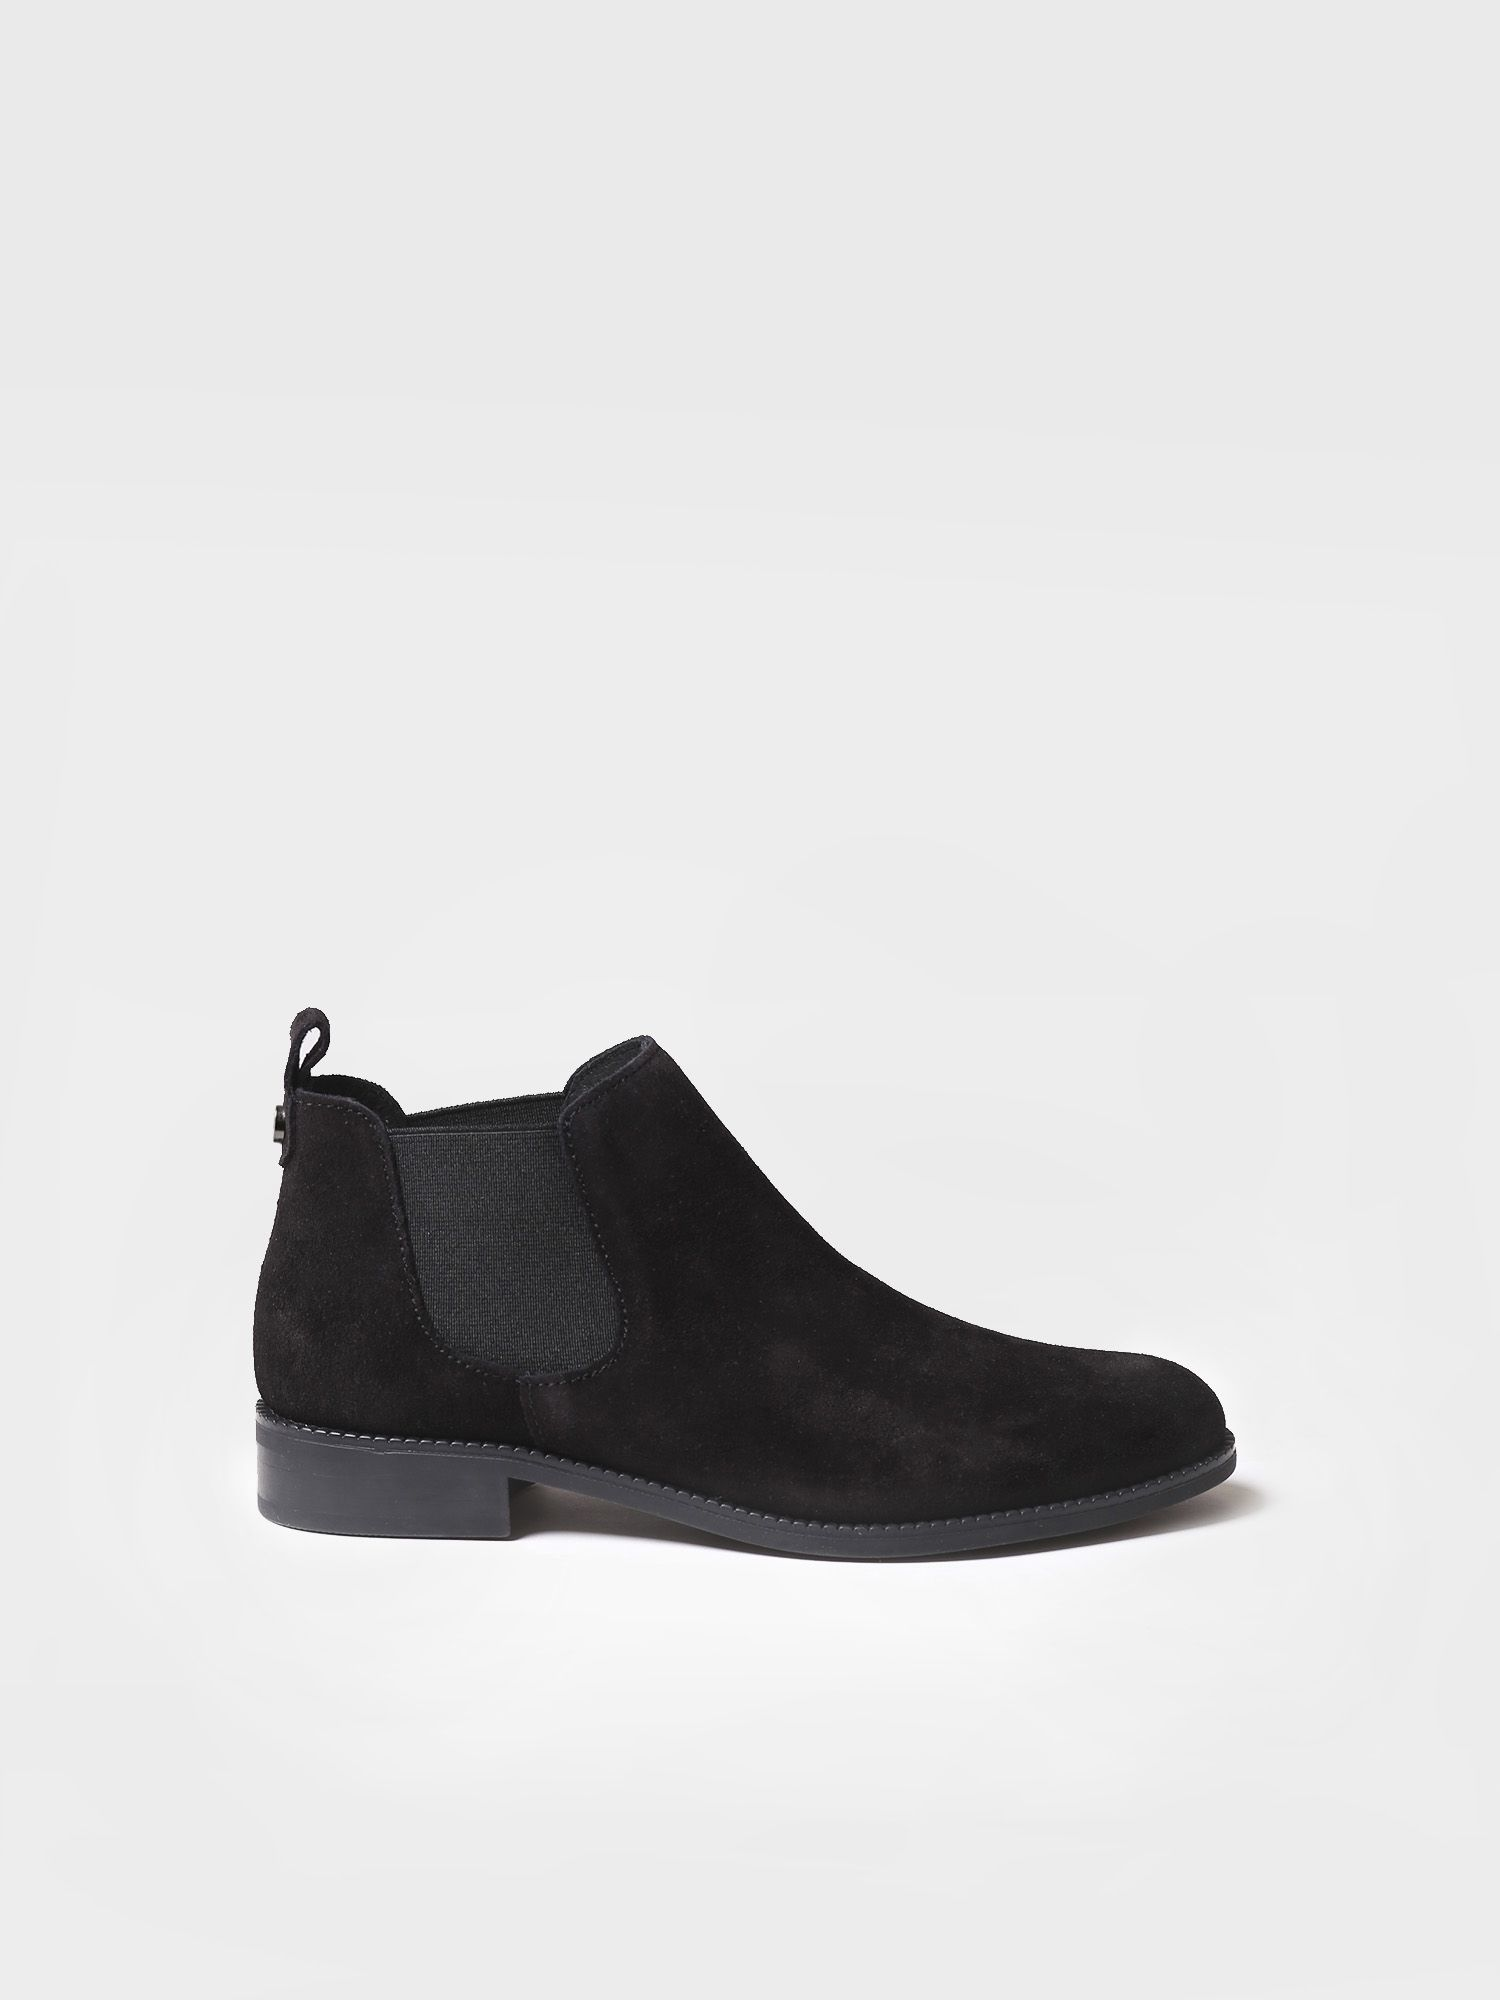 Ankle boot fpr women made of suede - VILA-SY